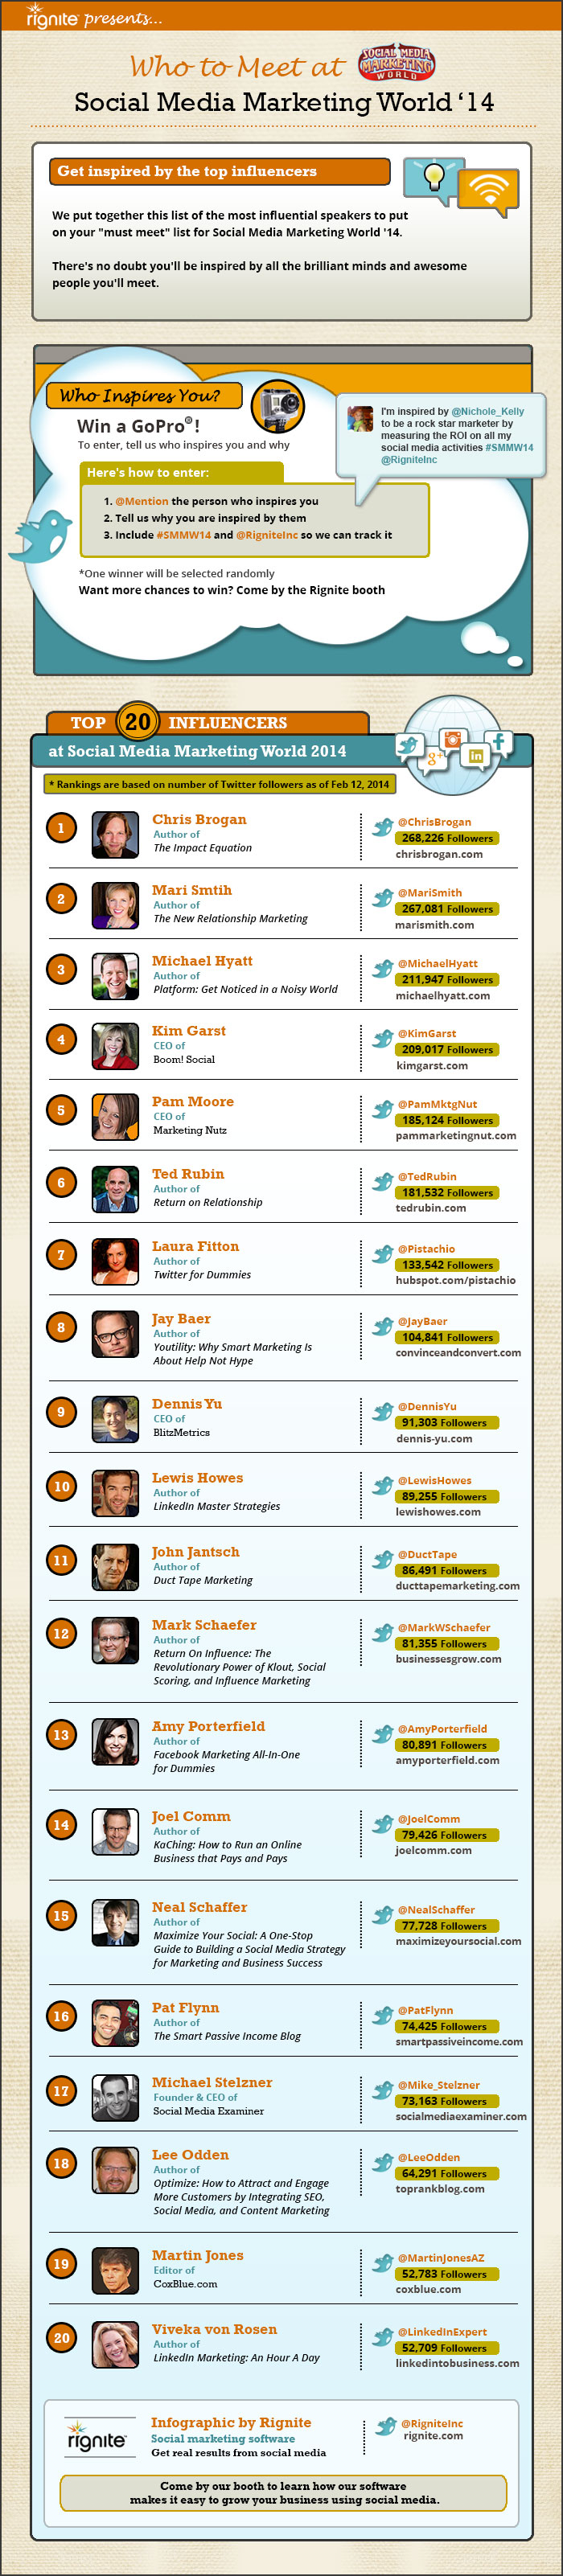 Who to Meet at Social Media Marketing World 2014 #SMMW14 via @RigniteInc